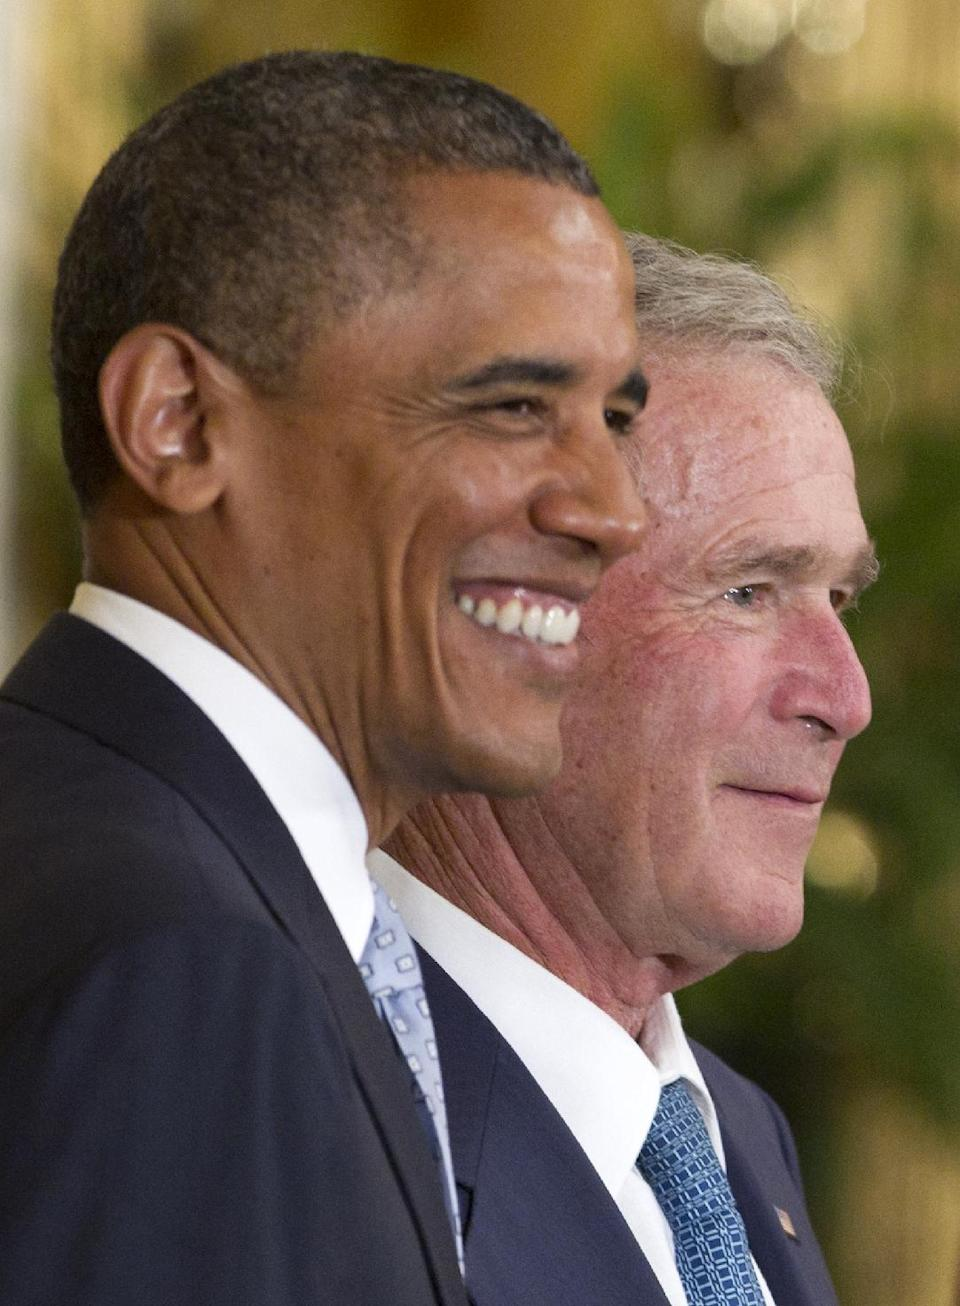 President Barack Obama stands with former President George W. Bush during a ceremony to unveil the Bush's portraits, Thursday, May 31, 2012,  in the East Room of the White House in Washington. (AP Photo/Carolyn Kaster)